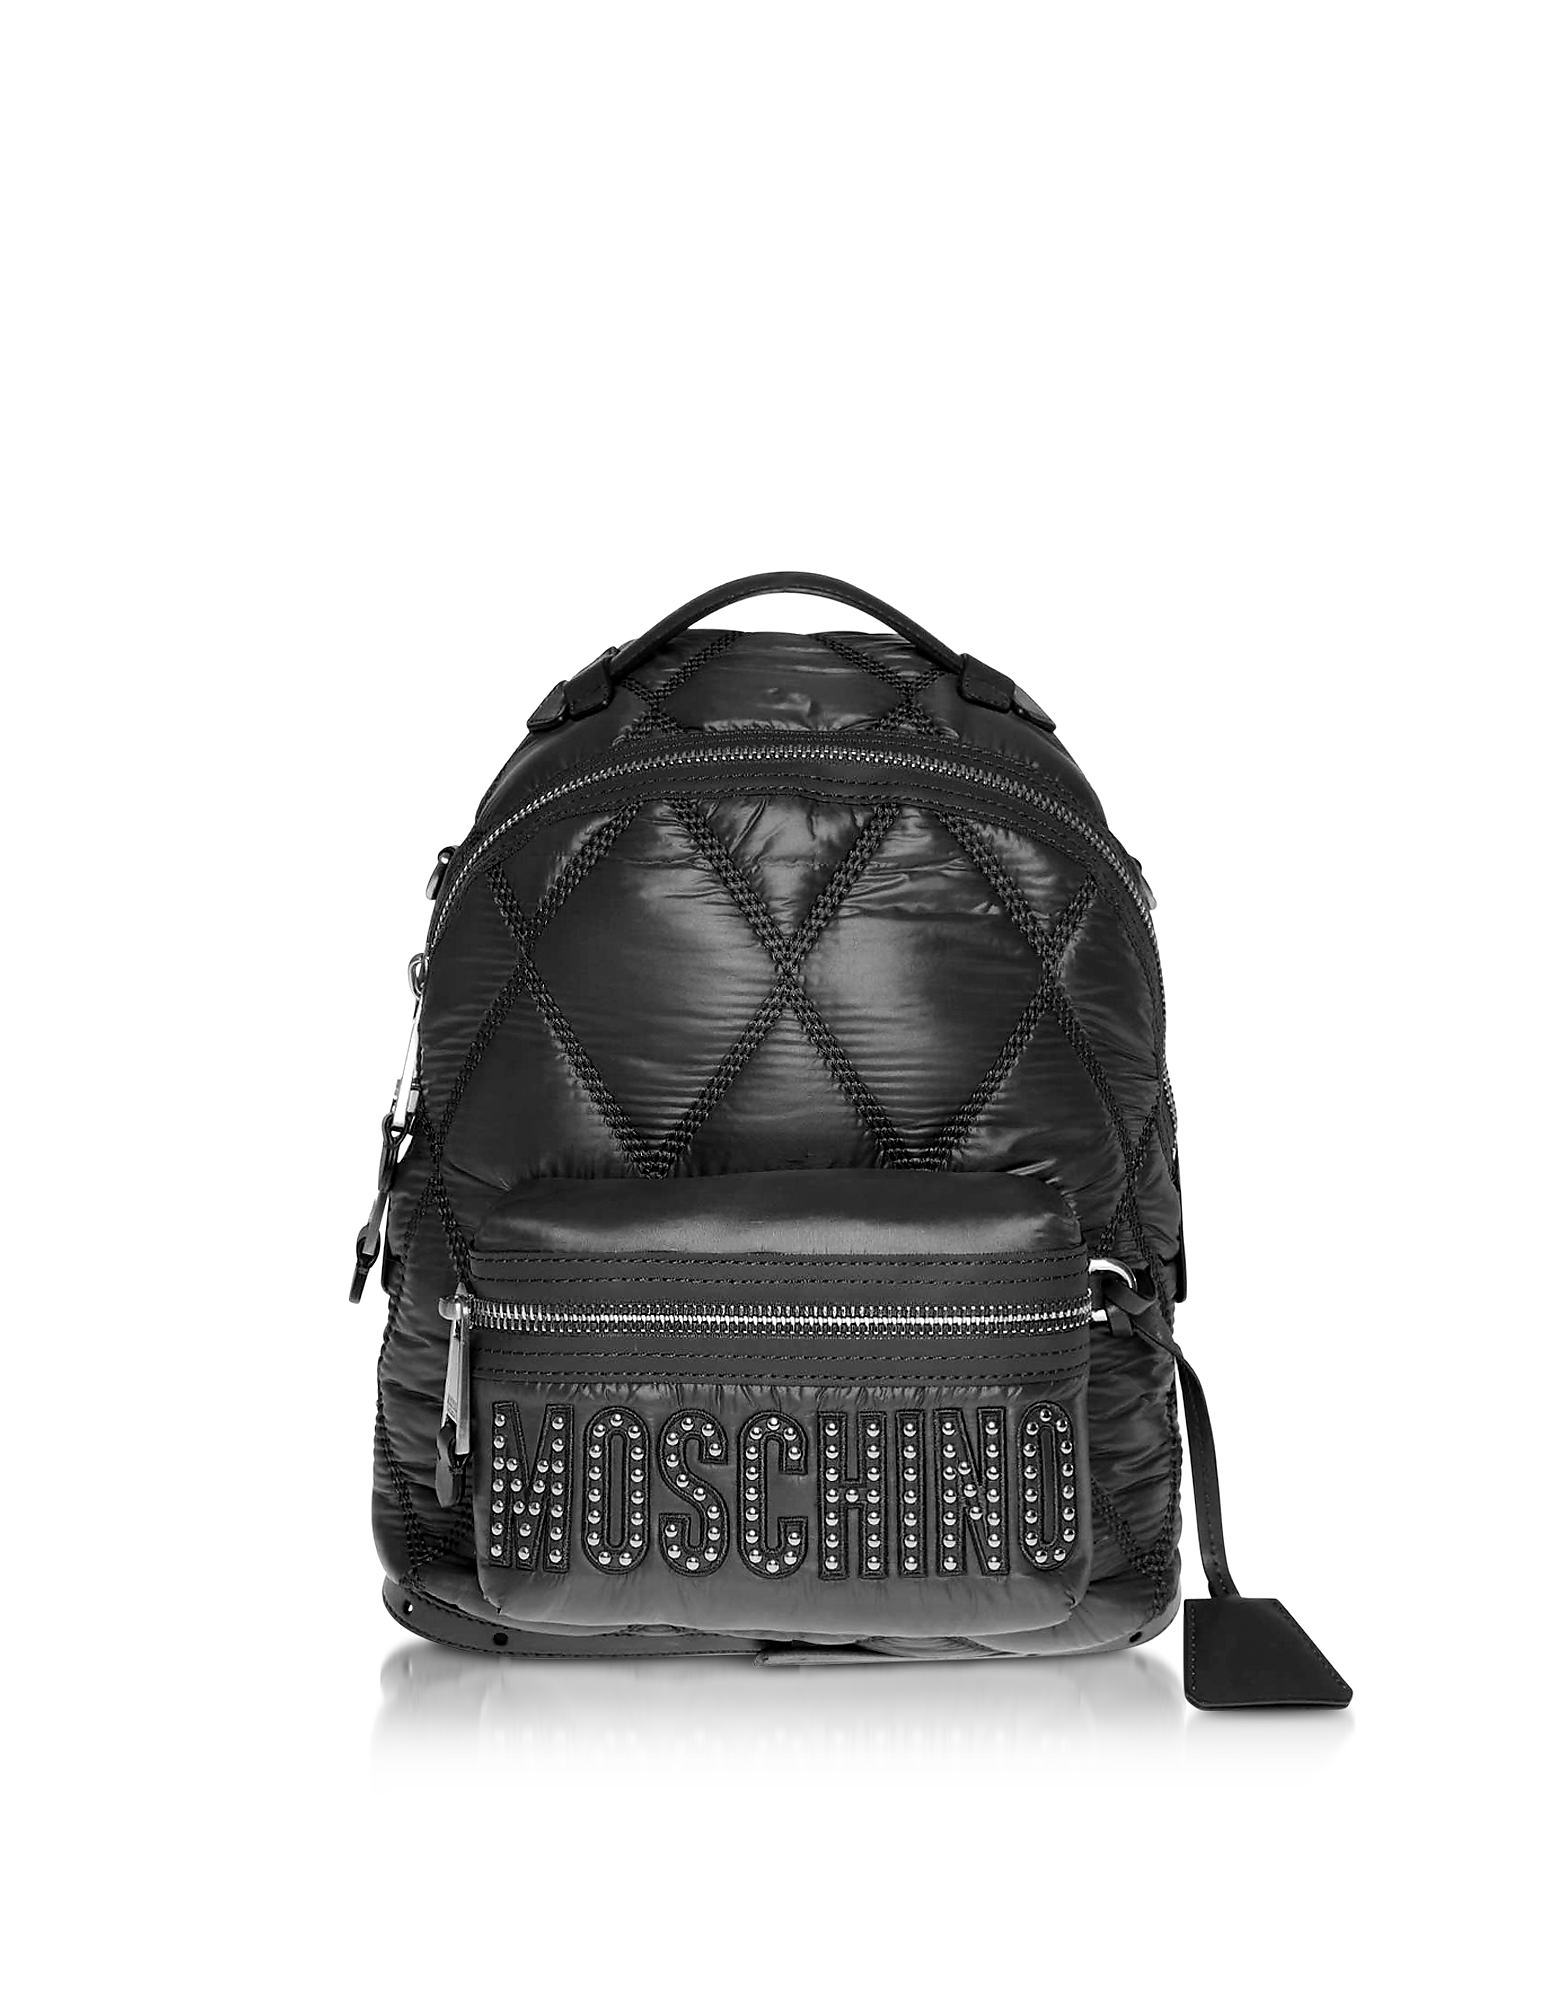 UPC 657536055549 product image for Moschino Designer Handbags, Black Quilted Nylon Signature Backpack w/Silver Stud | upcitemdb.com